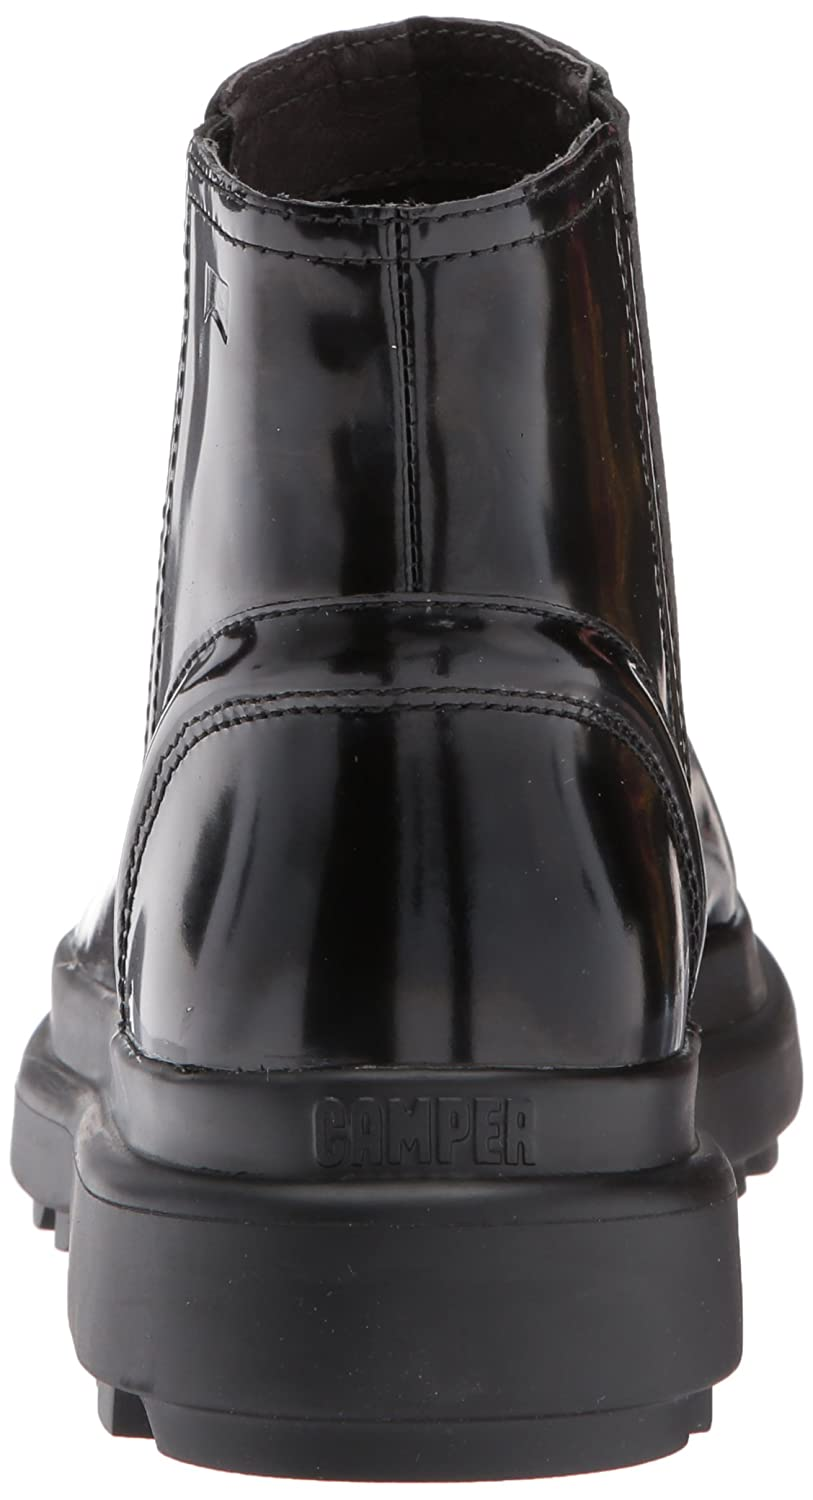 Camper Women's Turtle K400237 Ankle Ankle K400237 Boot B01MTEQFV0 Boots 03b92d